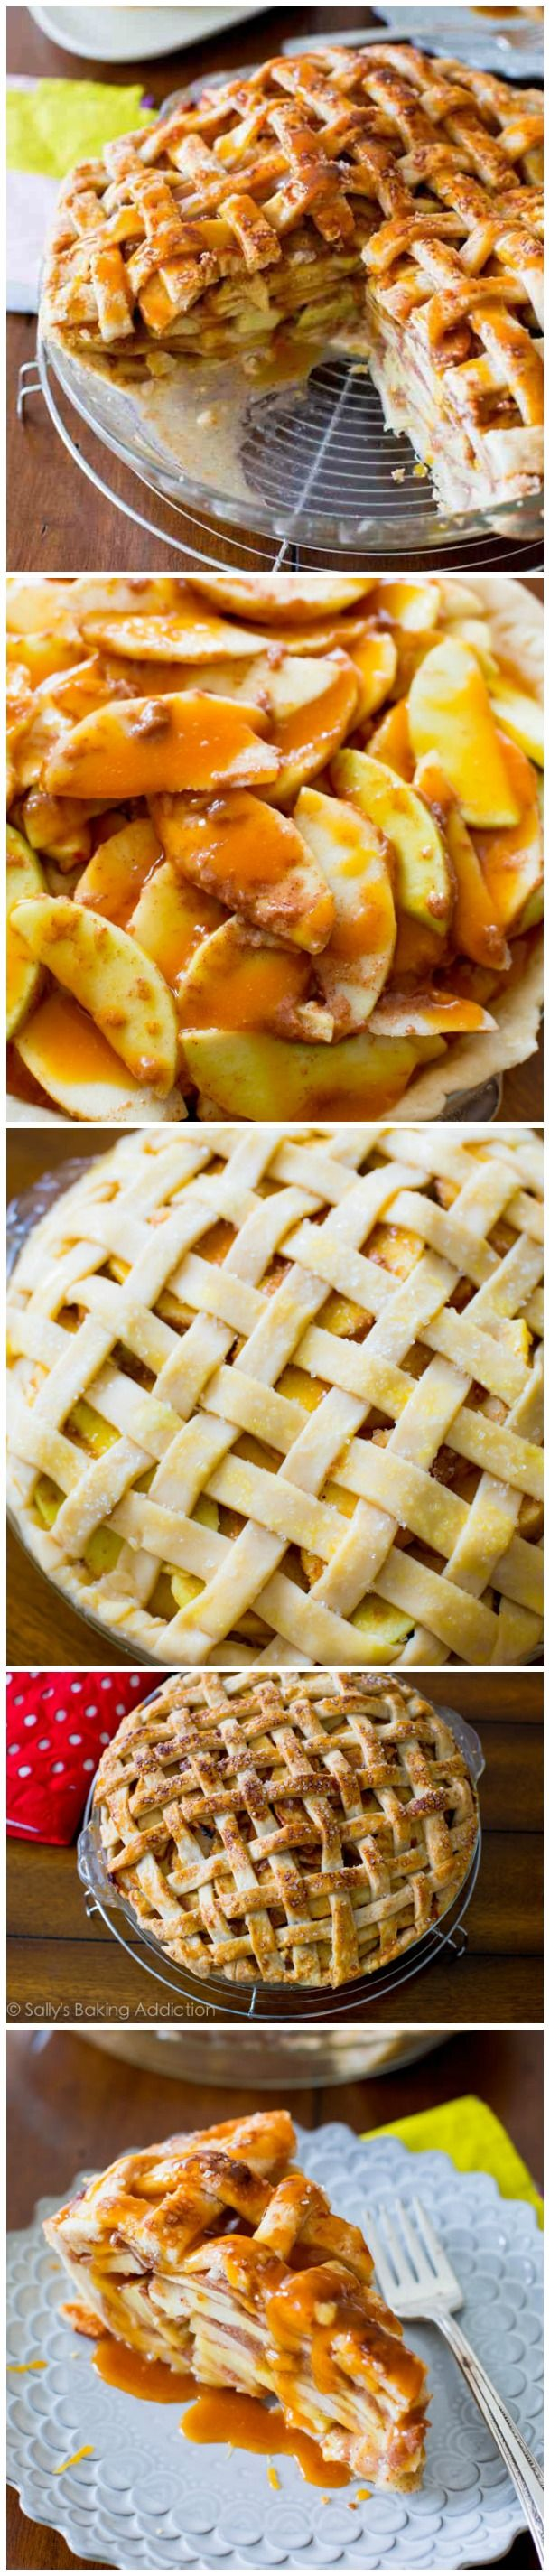 My favorite pie recipe! A classic lattice-topped all American apple pie bubbling with salted caramel and gooey, cinnamon apples.